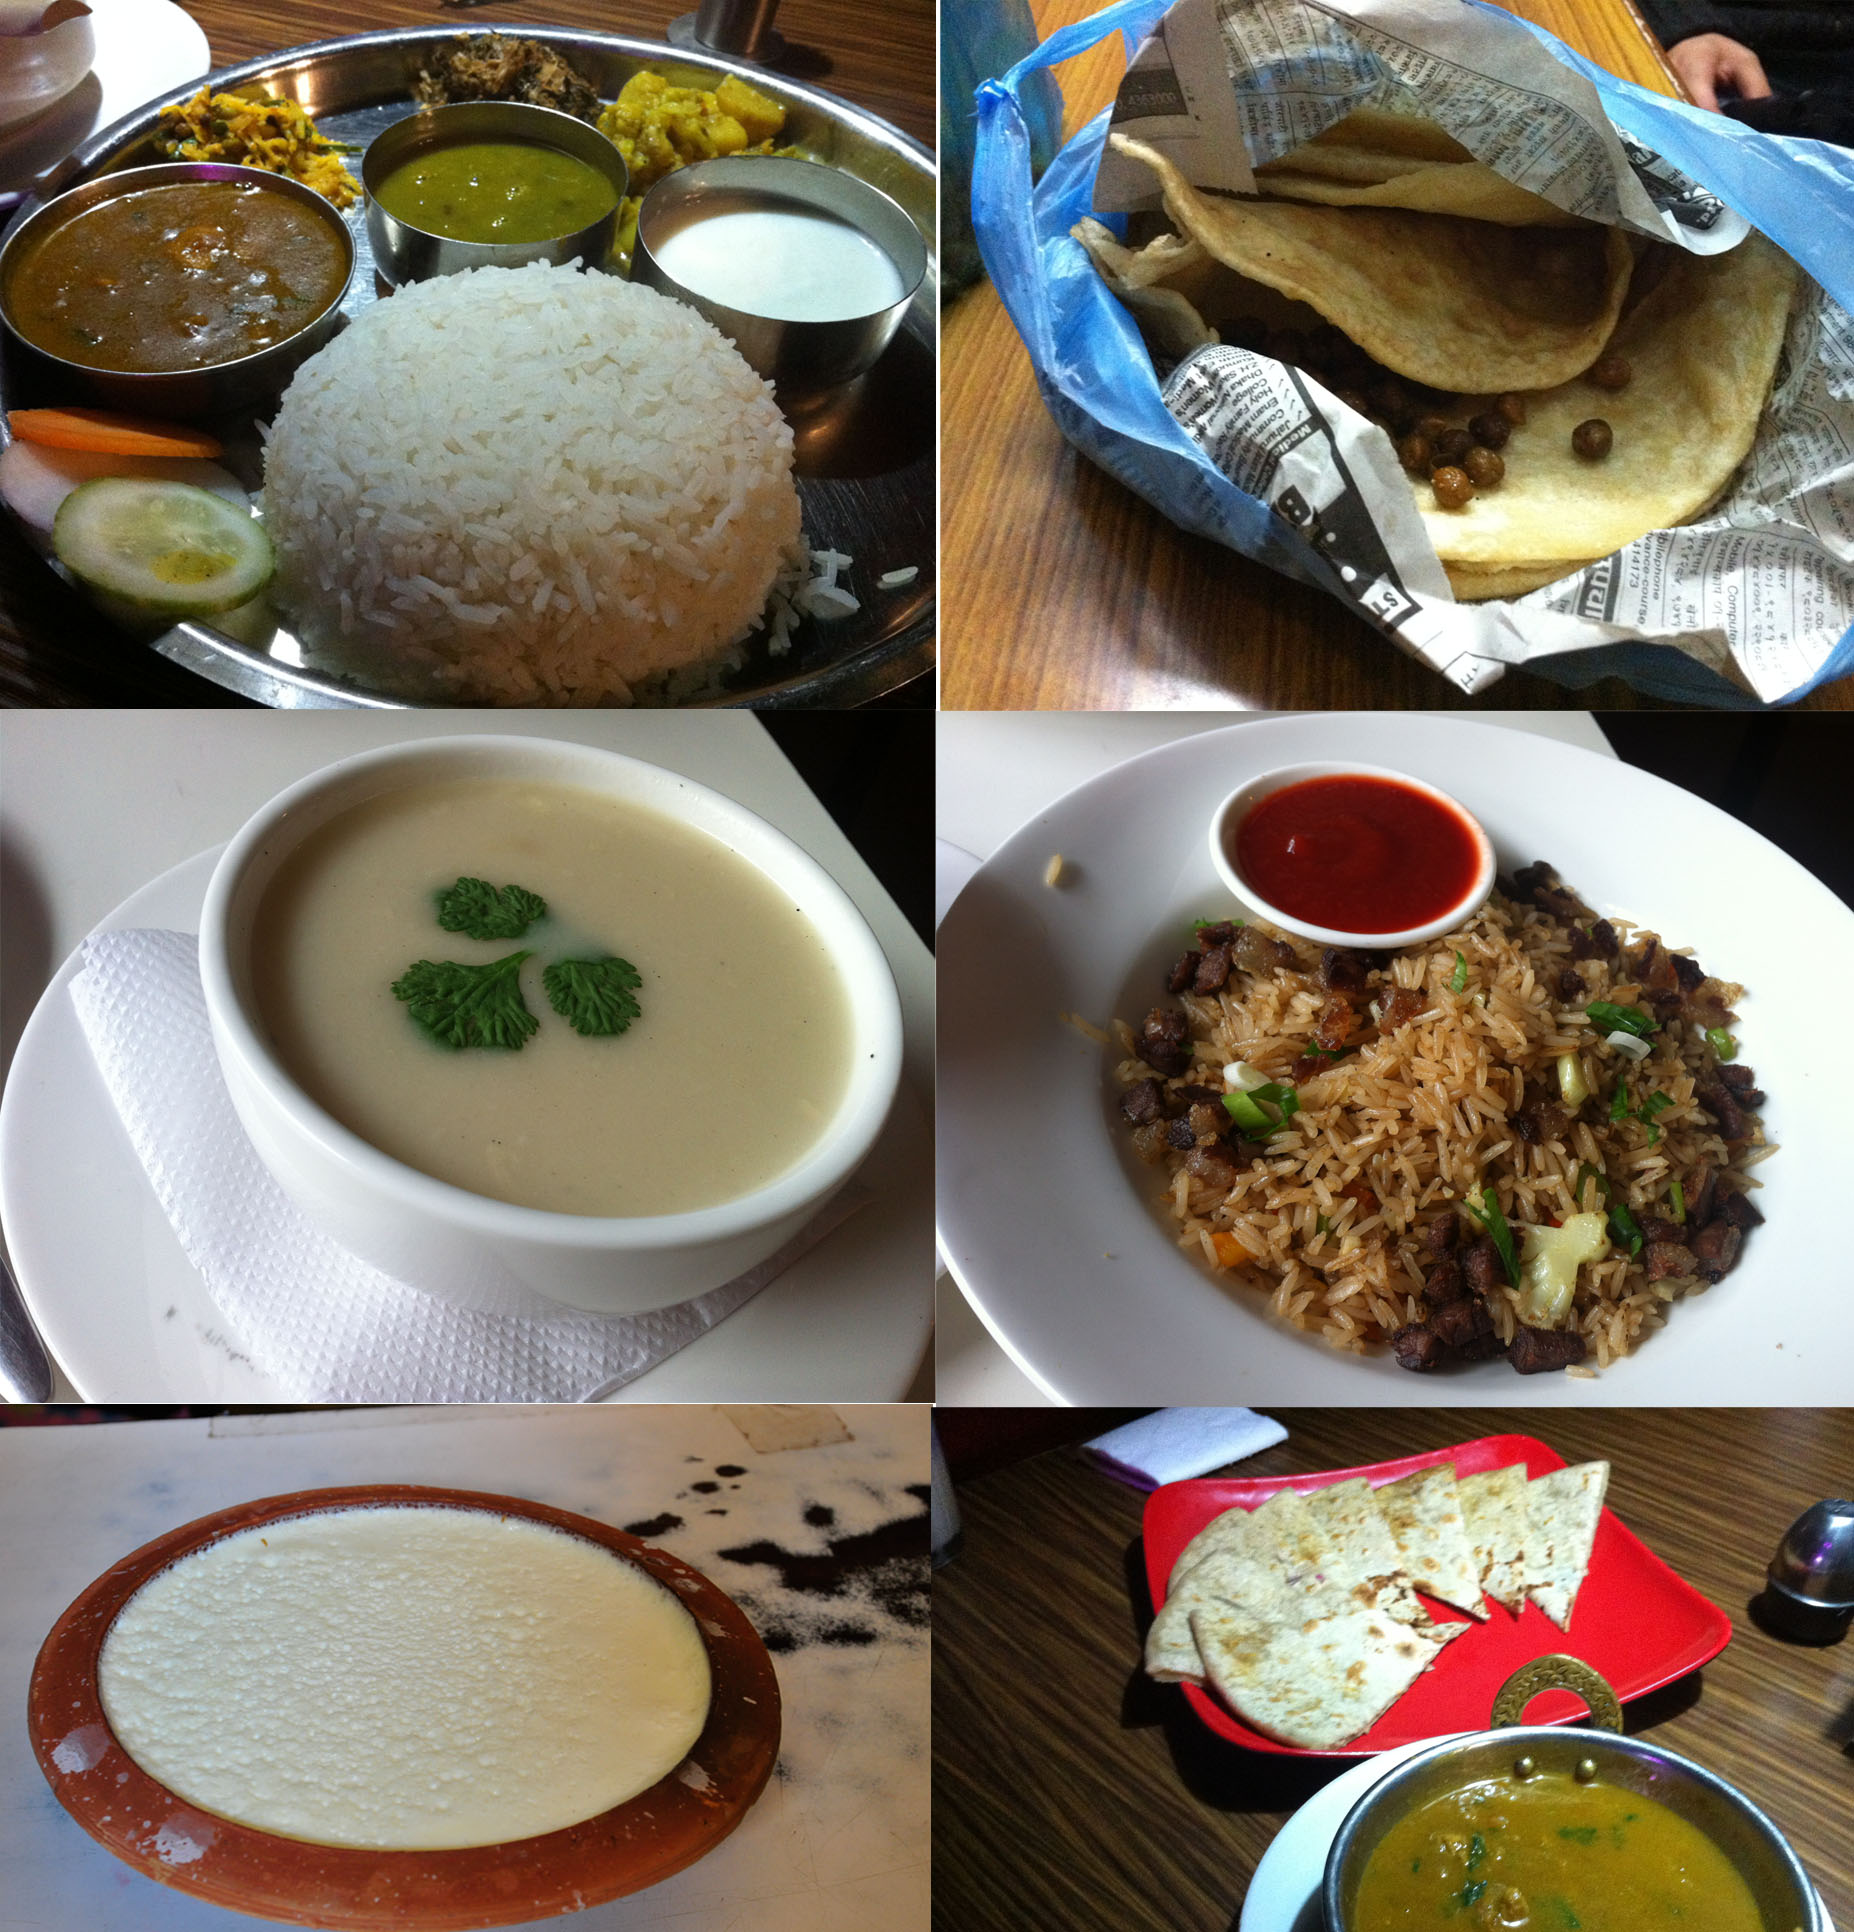 1st: Nepali set dinner; 2nd: pancake (I can't say how simple the wrap is, anyway I tried the REAL local street food); 3rd: chicken soup; 4th: chicken fried rice; 5th: handmade yogurt; 6th: nana, local food.